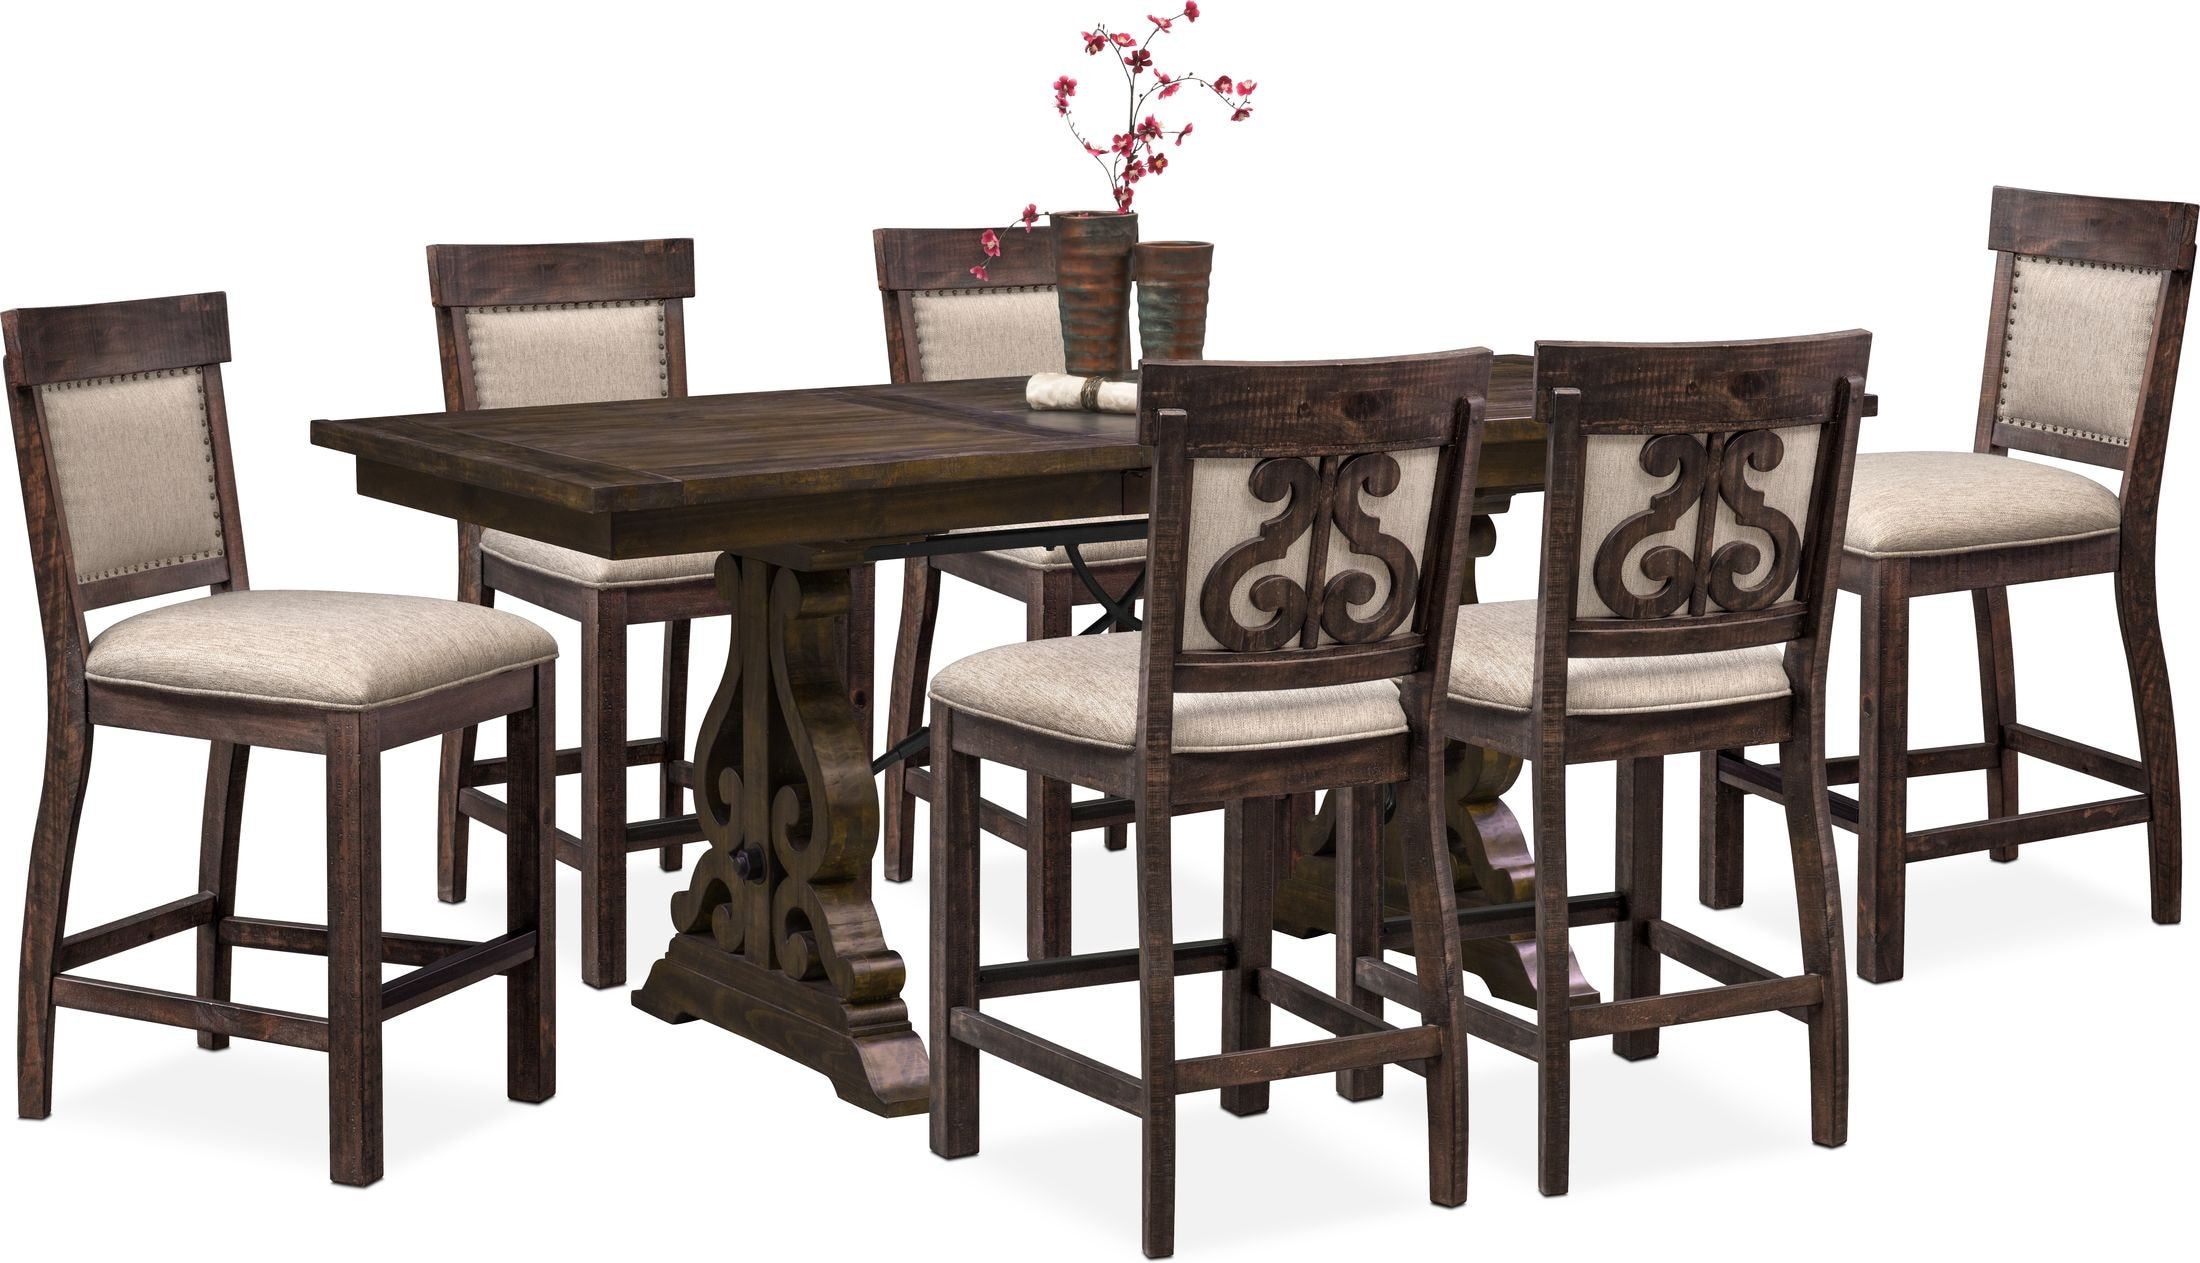 Dining Room Furniture - Charthouse Counter-Height Dining Table and 6 Upholstered Stools